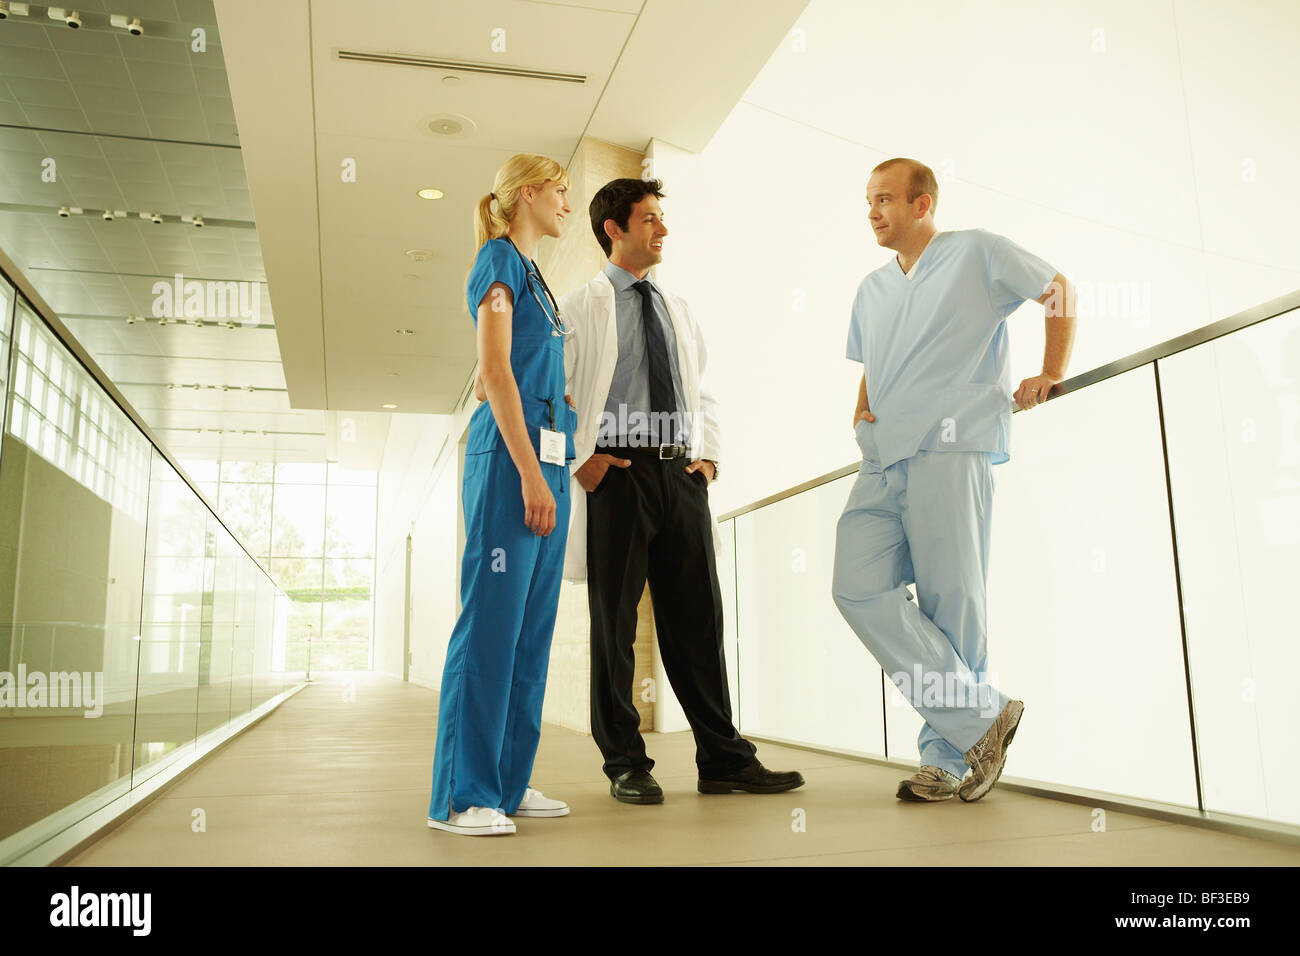 Medical personnel in modern facility Stock Photo